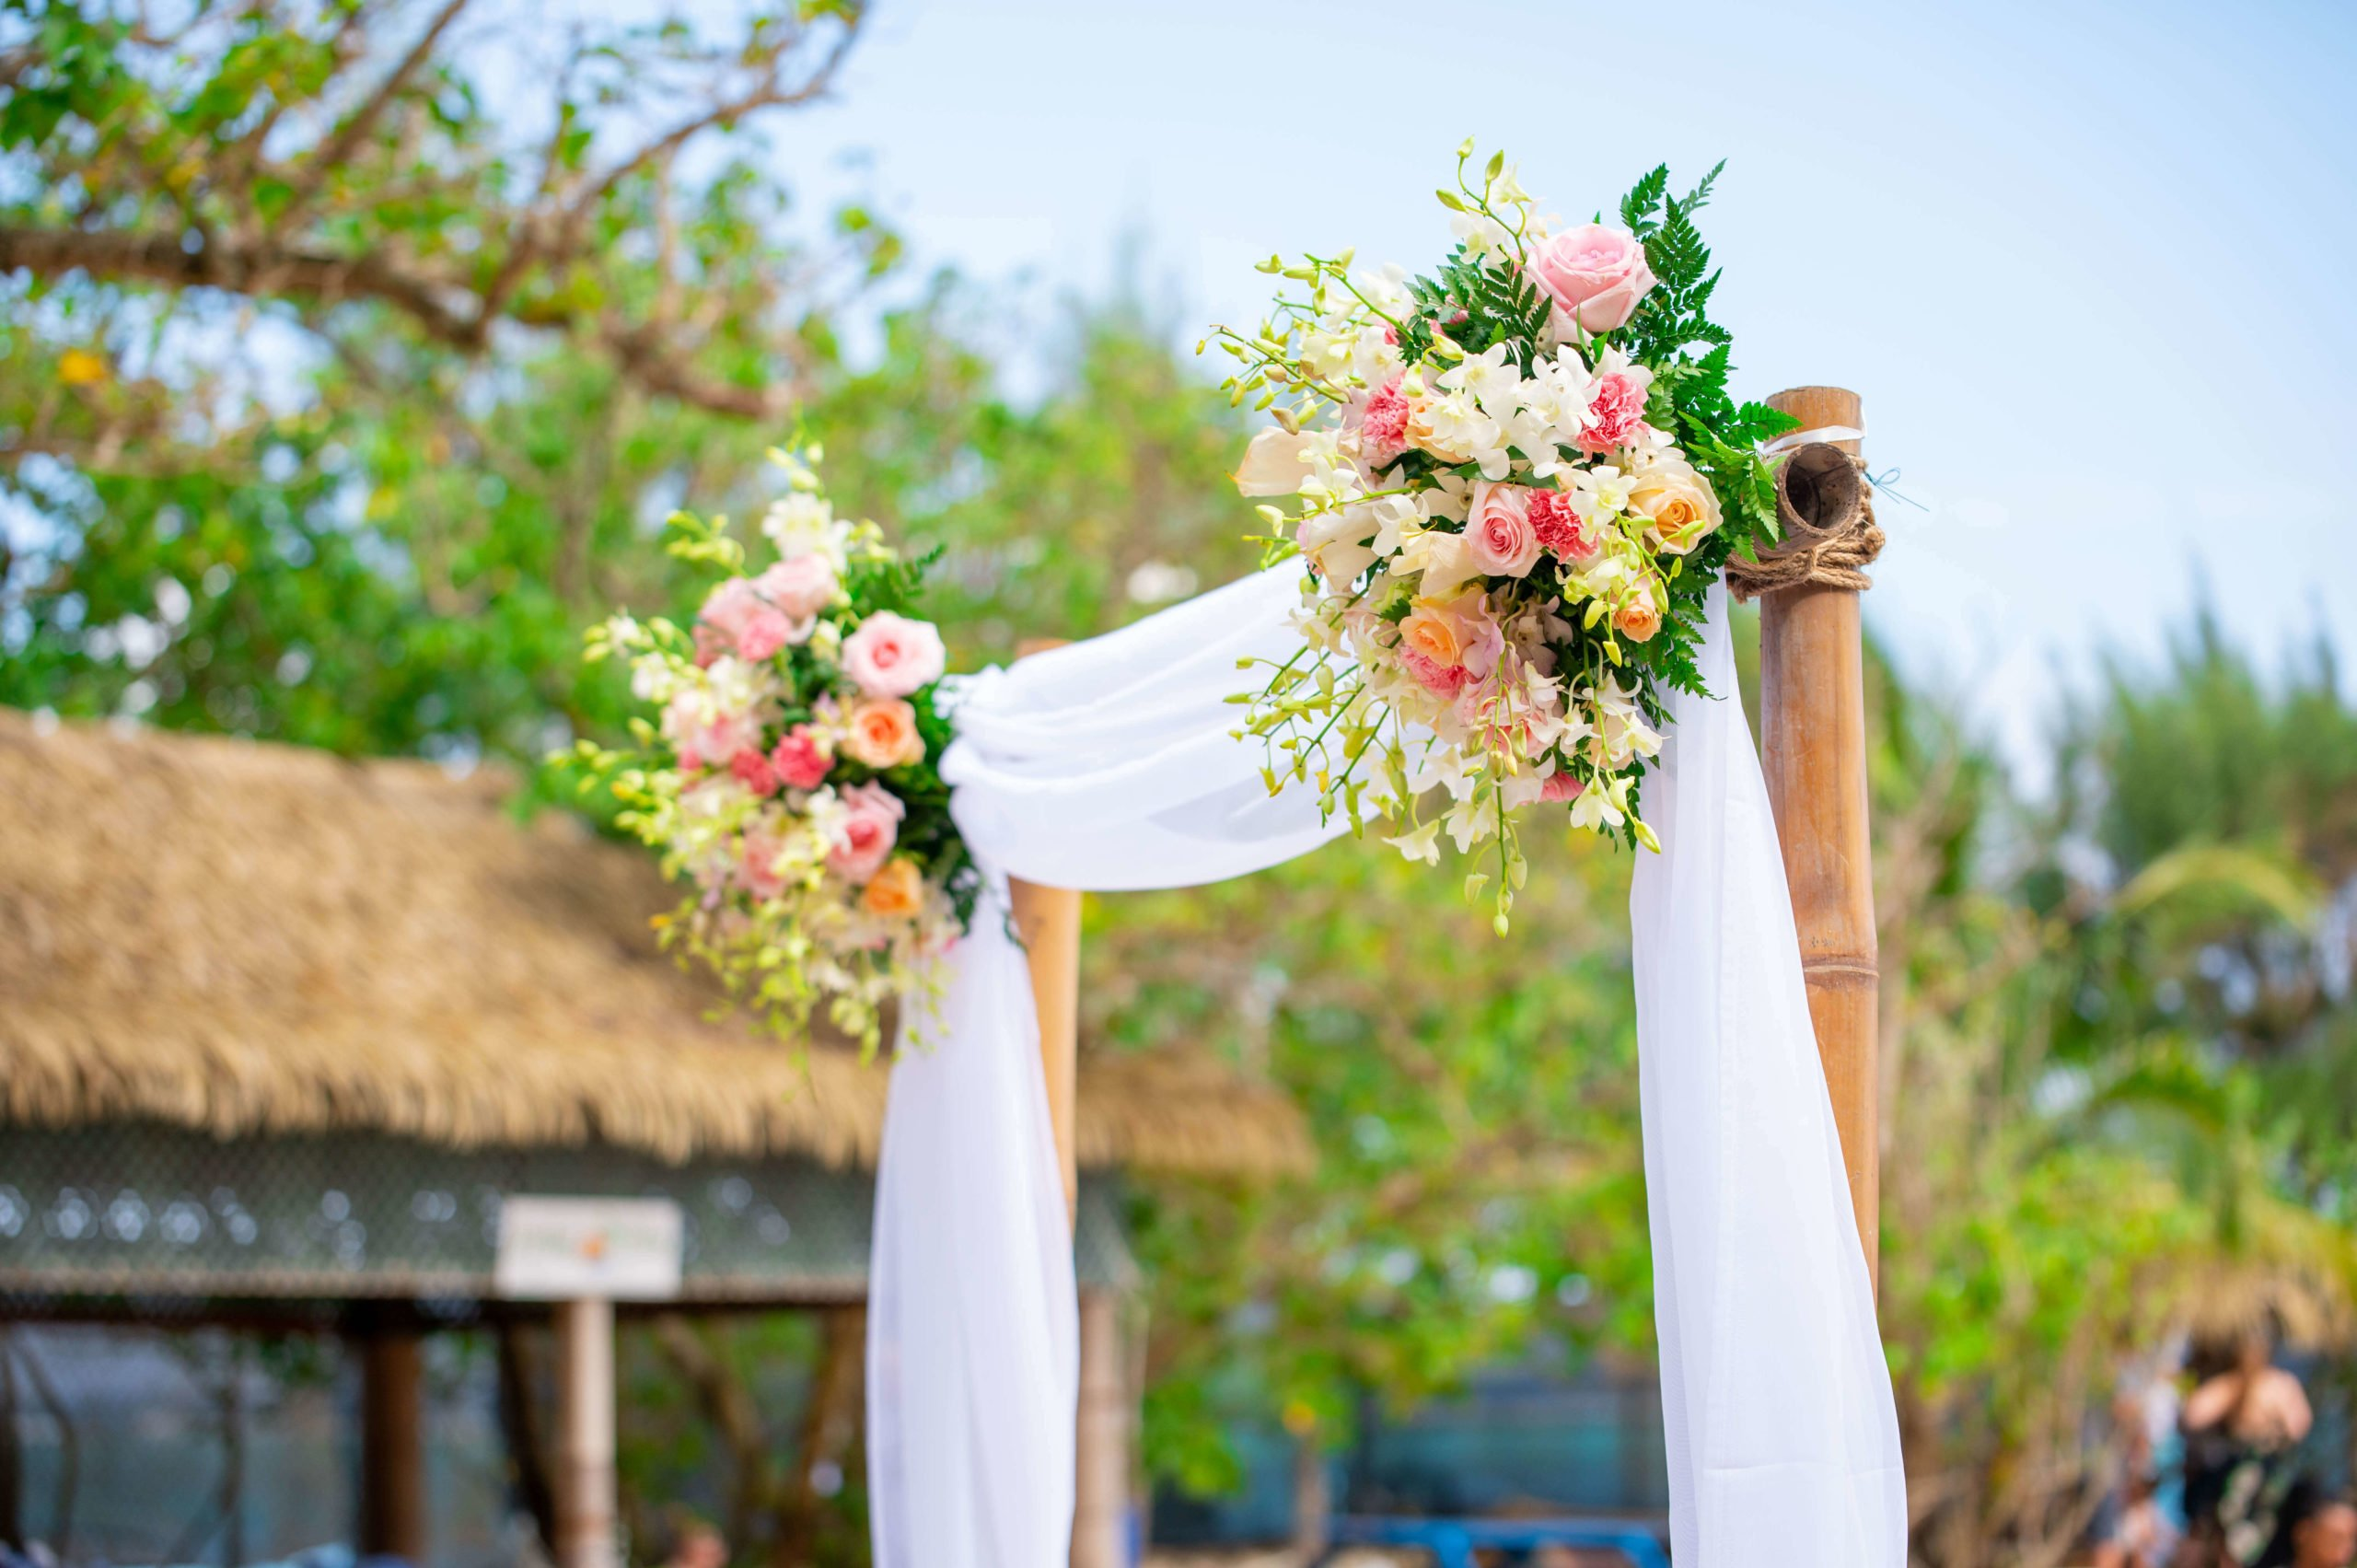 Wedding Packages in Jamaica